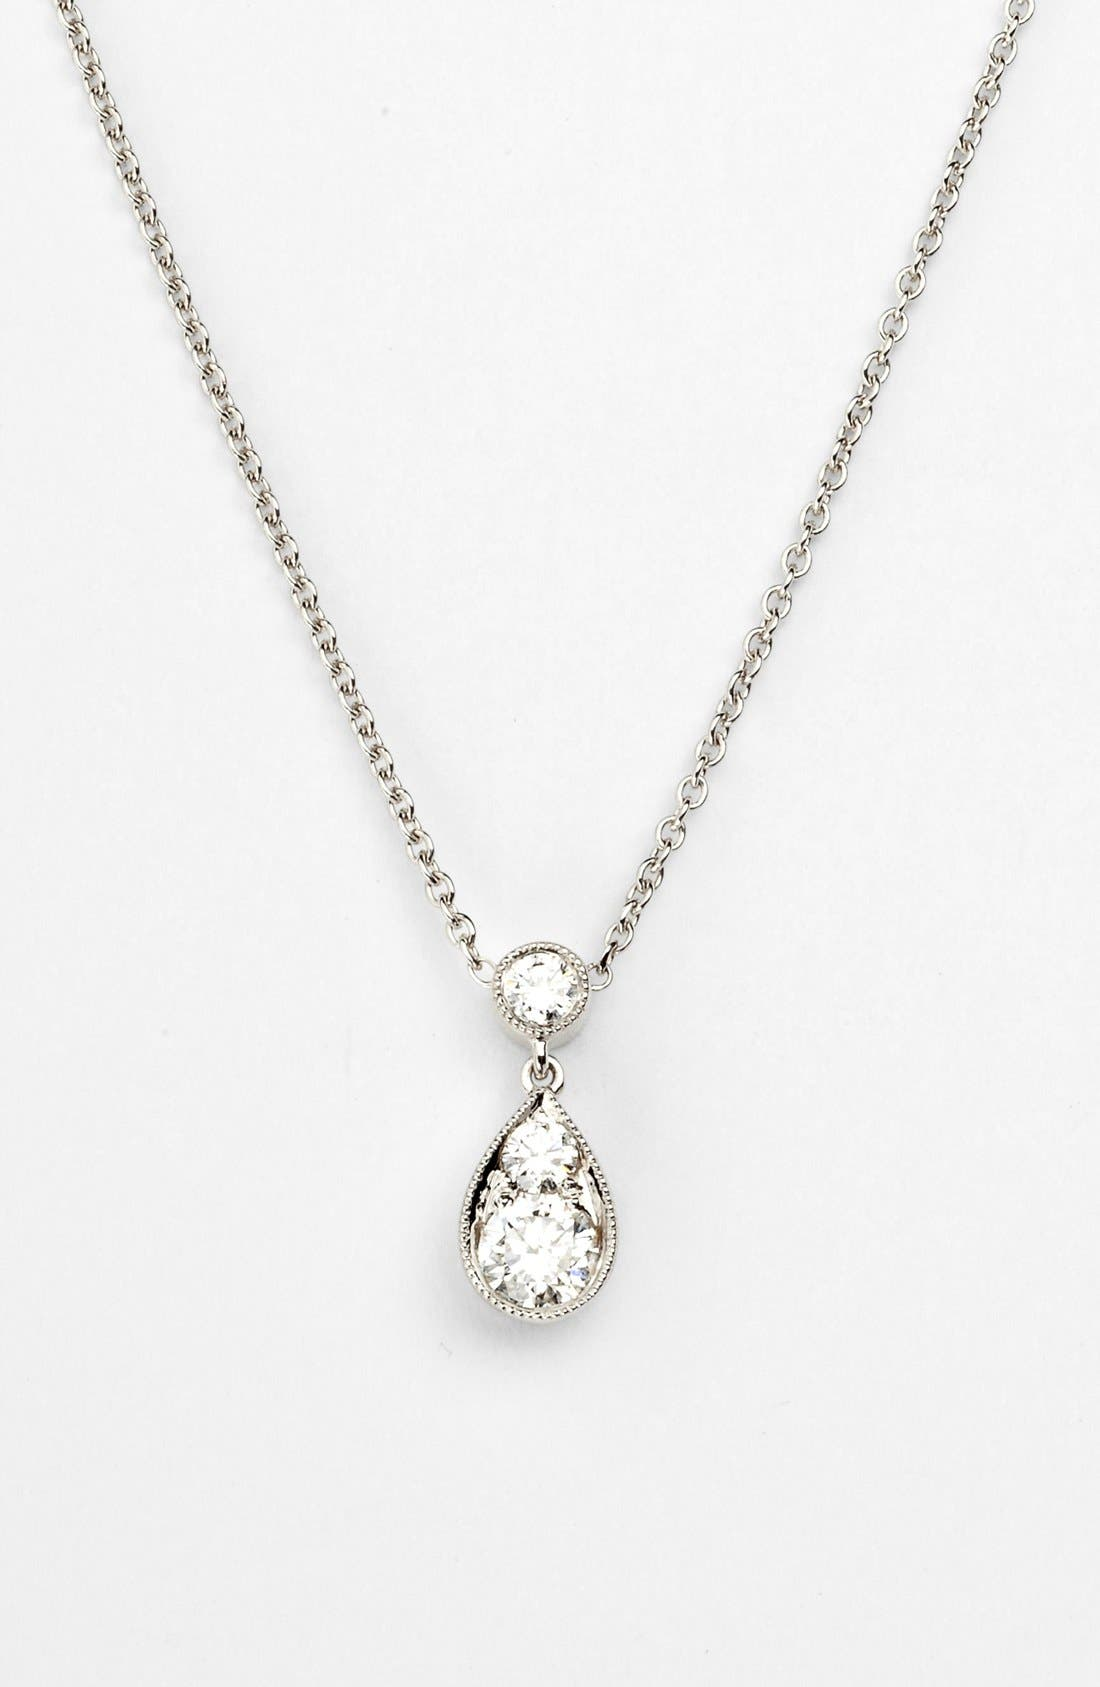 Main Image - Kwiat 'Sunburst' Diamond Teardrop Pendant Necklace